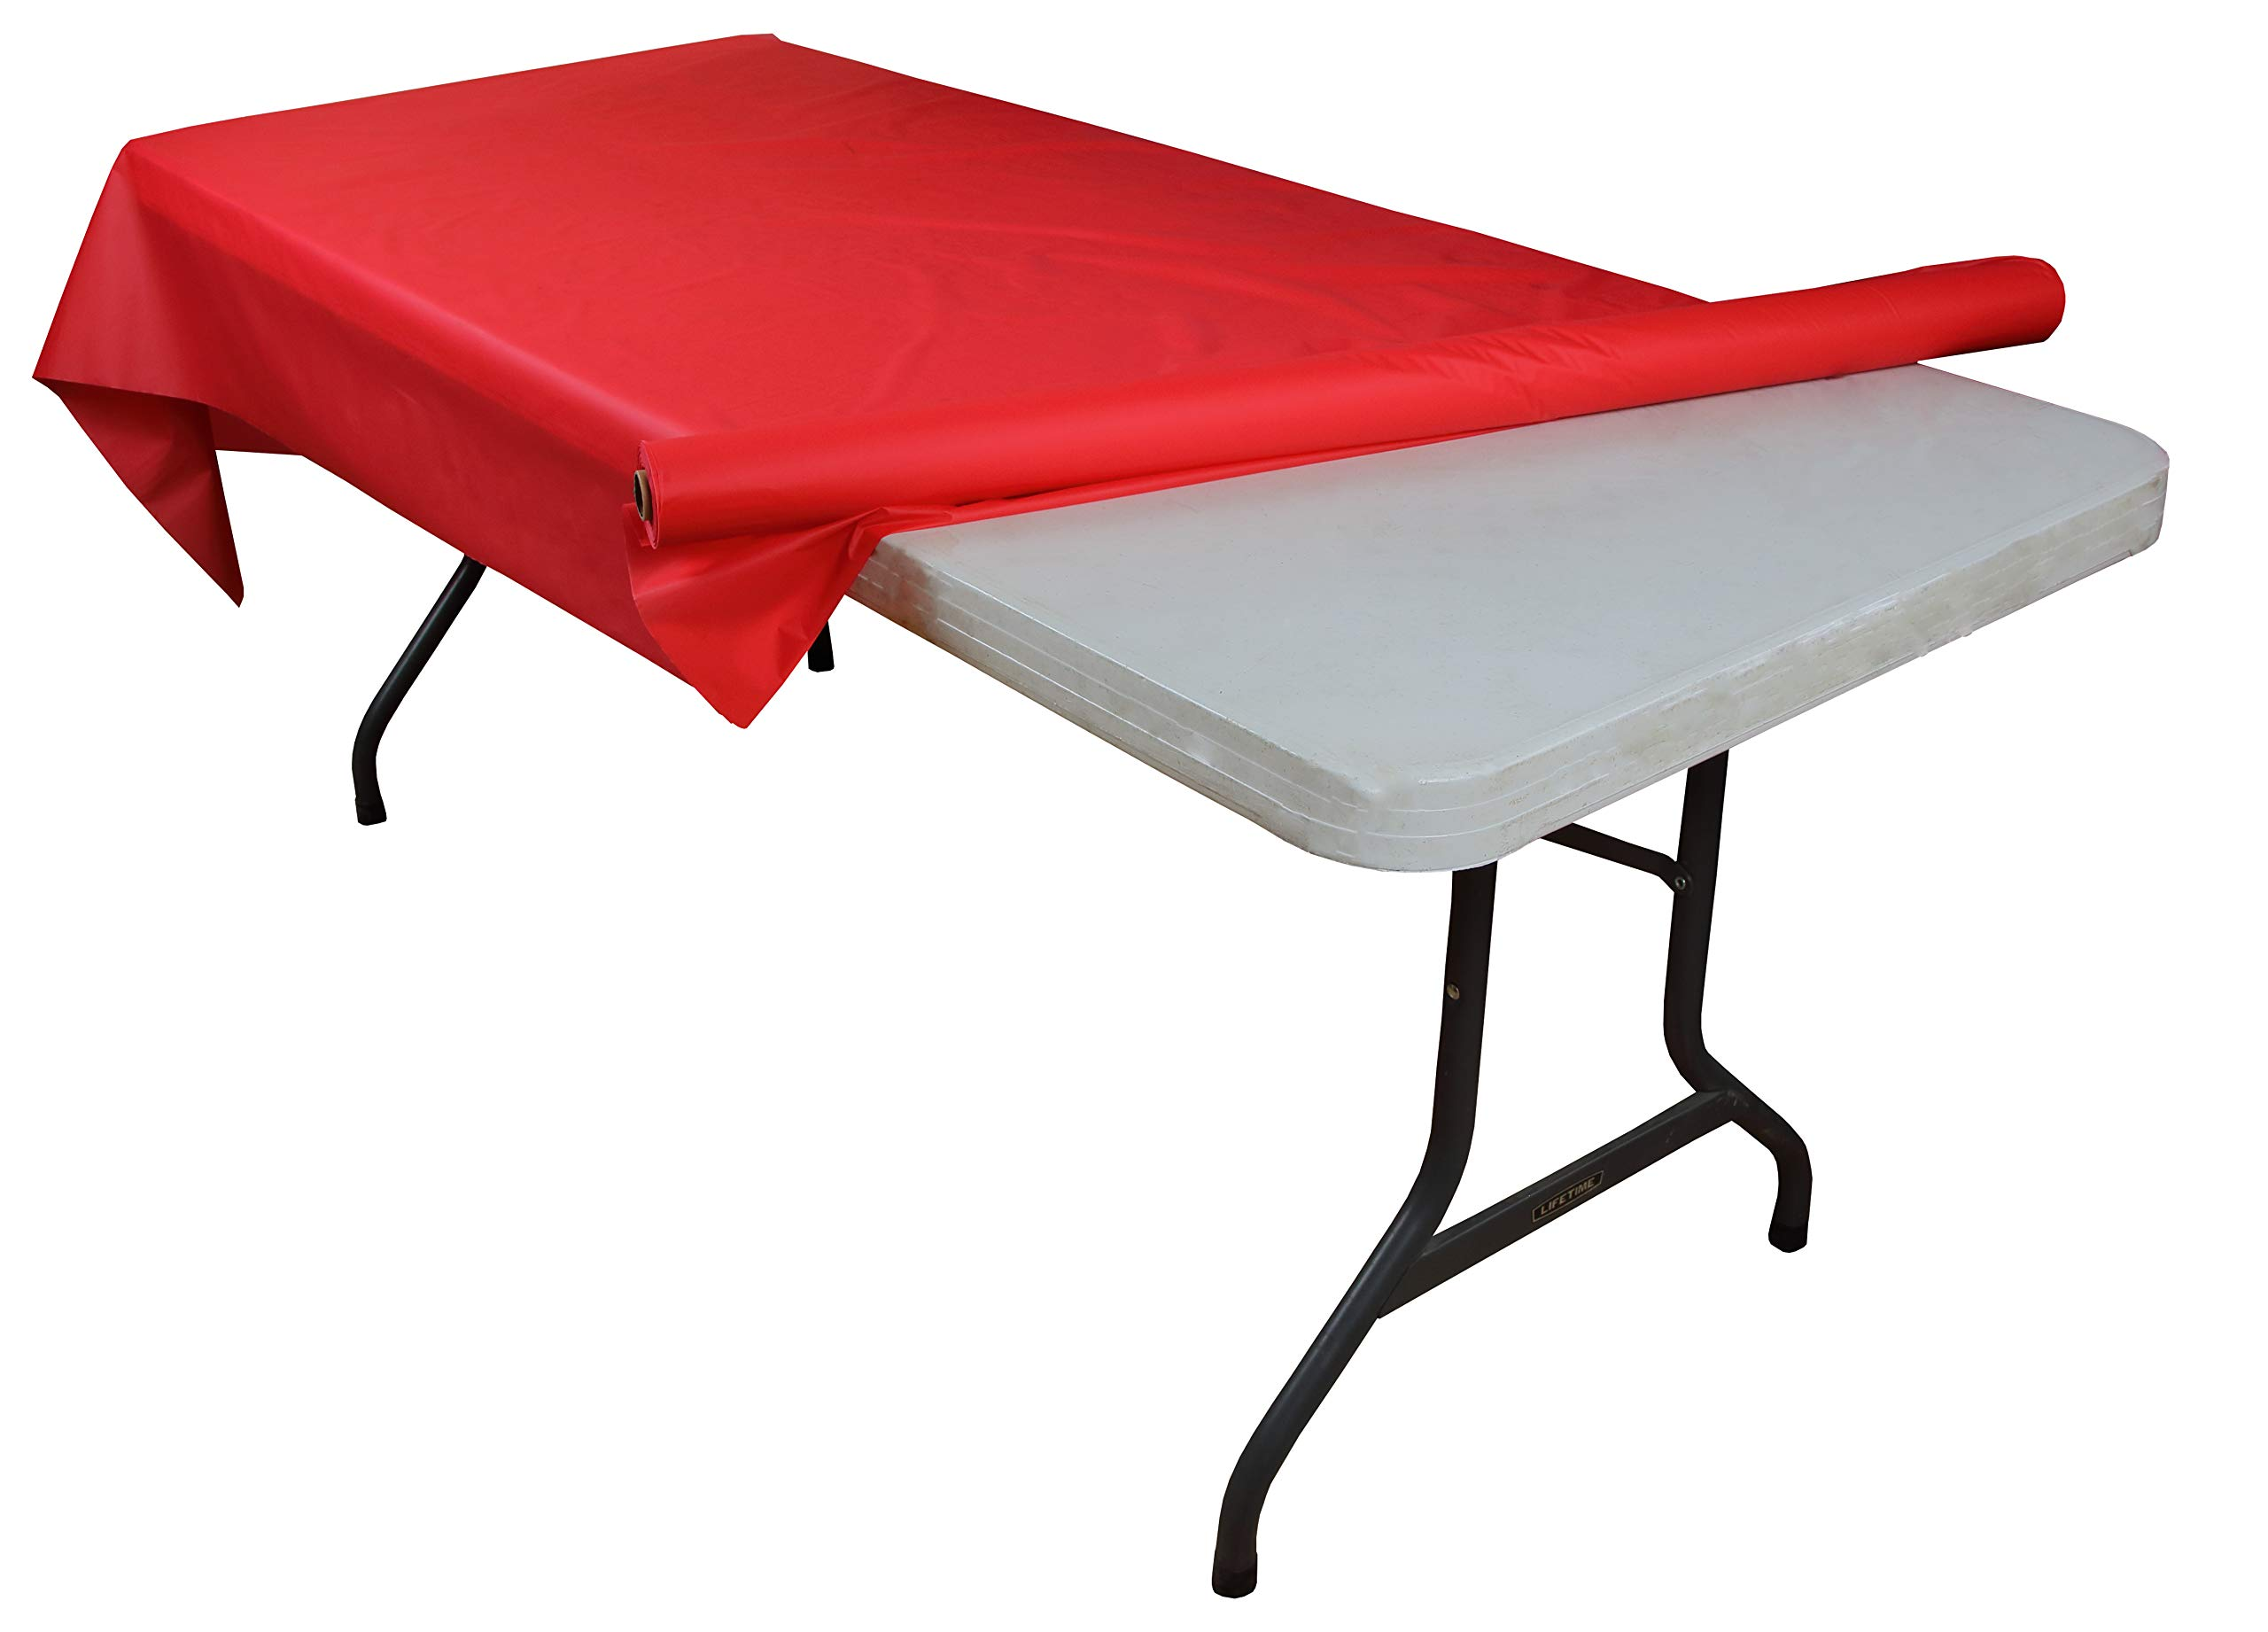 Exquisite Premium Quality Plastic Table Cover Banquet Rolls 40'' X 300' (Red) by Exquisite